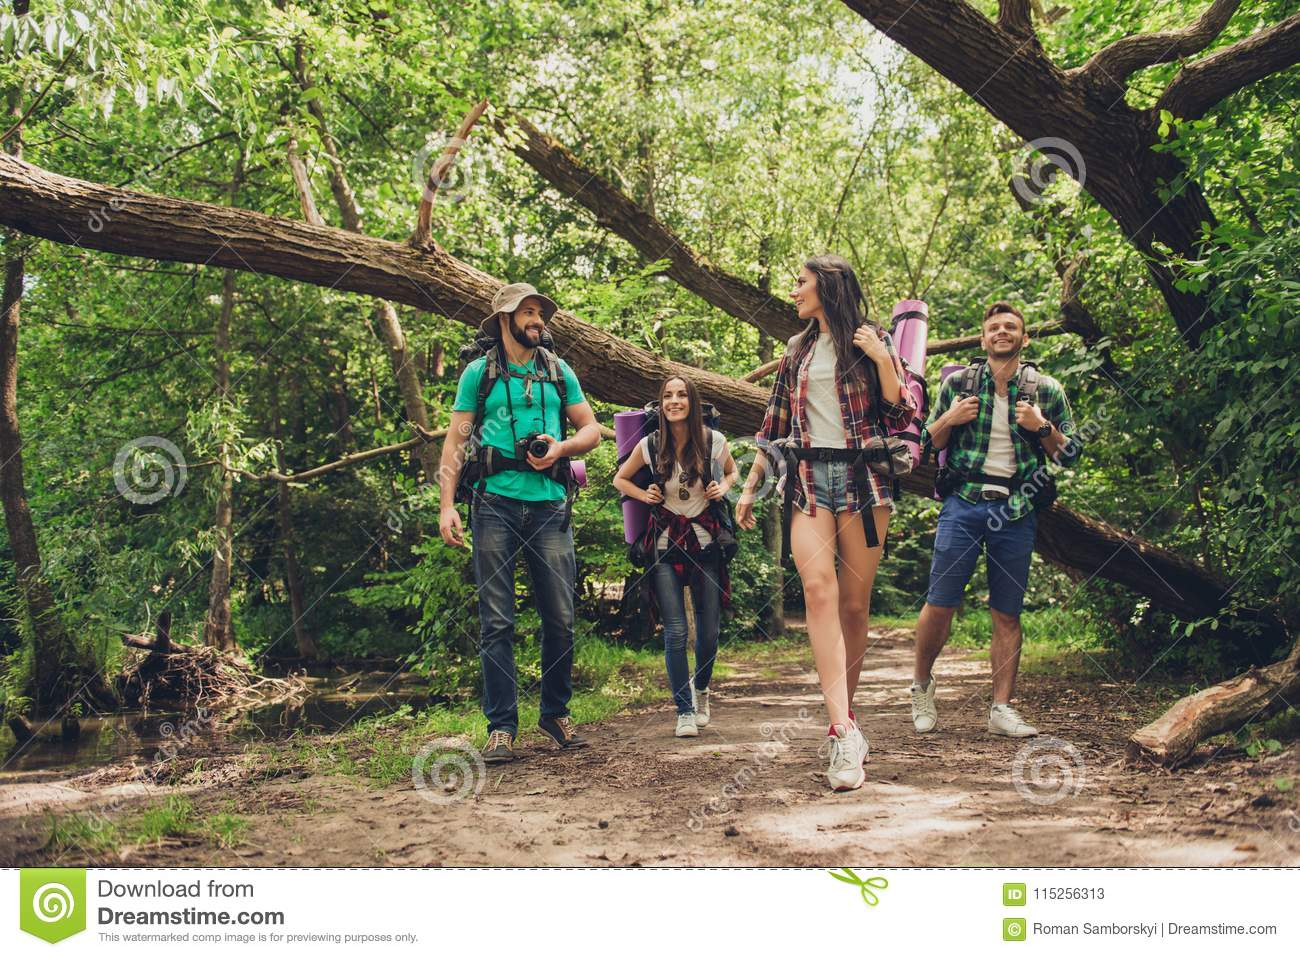 Trekking, camping and wild life concept. Two couples of friends are walking in the sunny spring woods, talking and laughing, all a